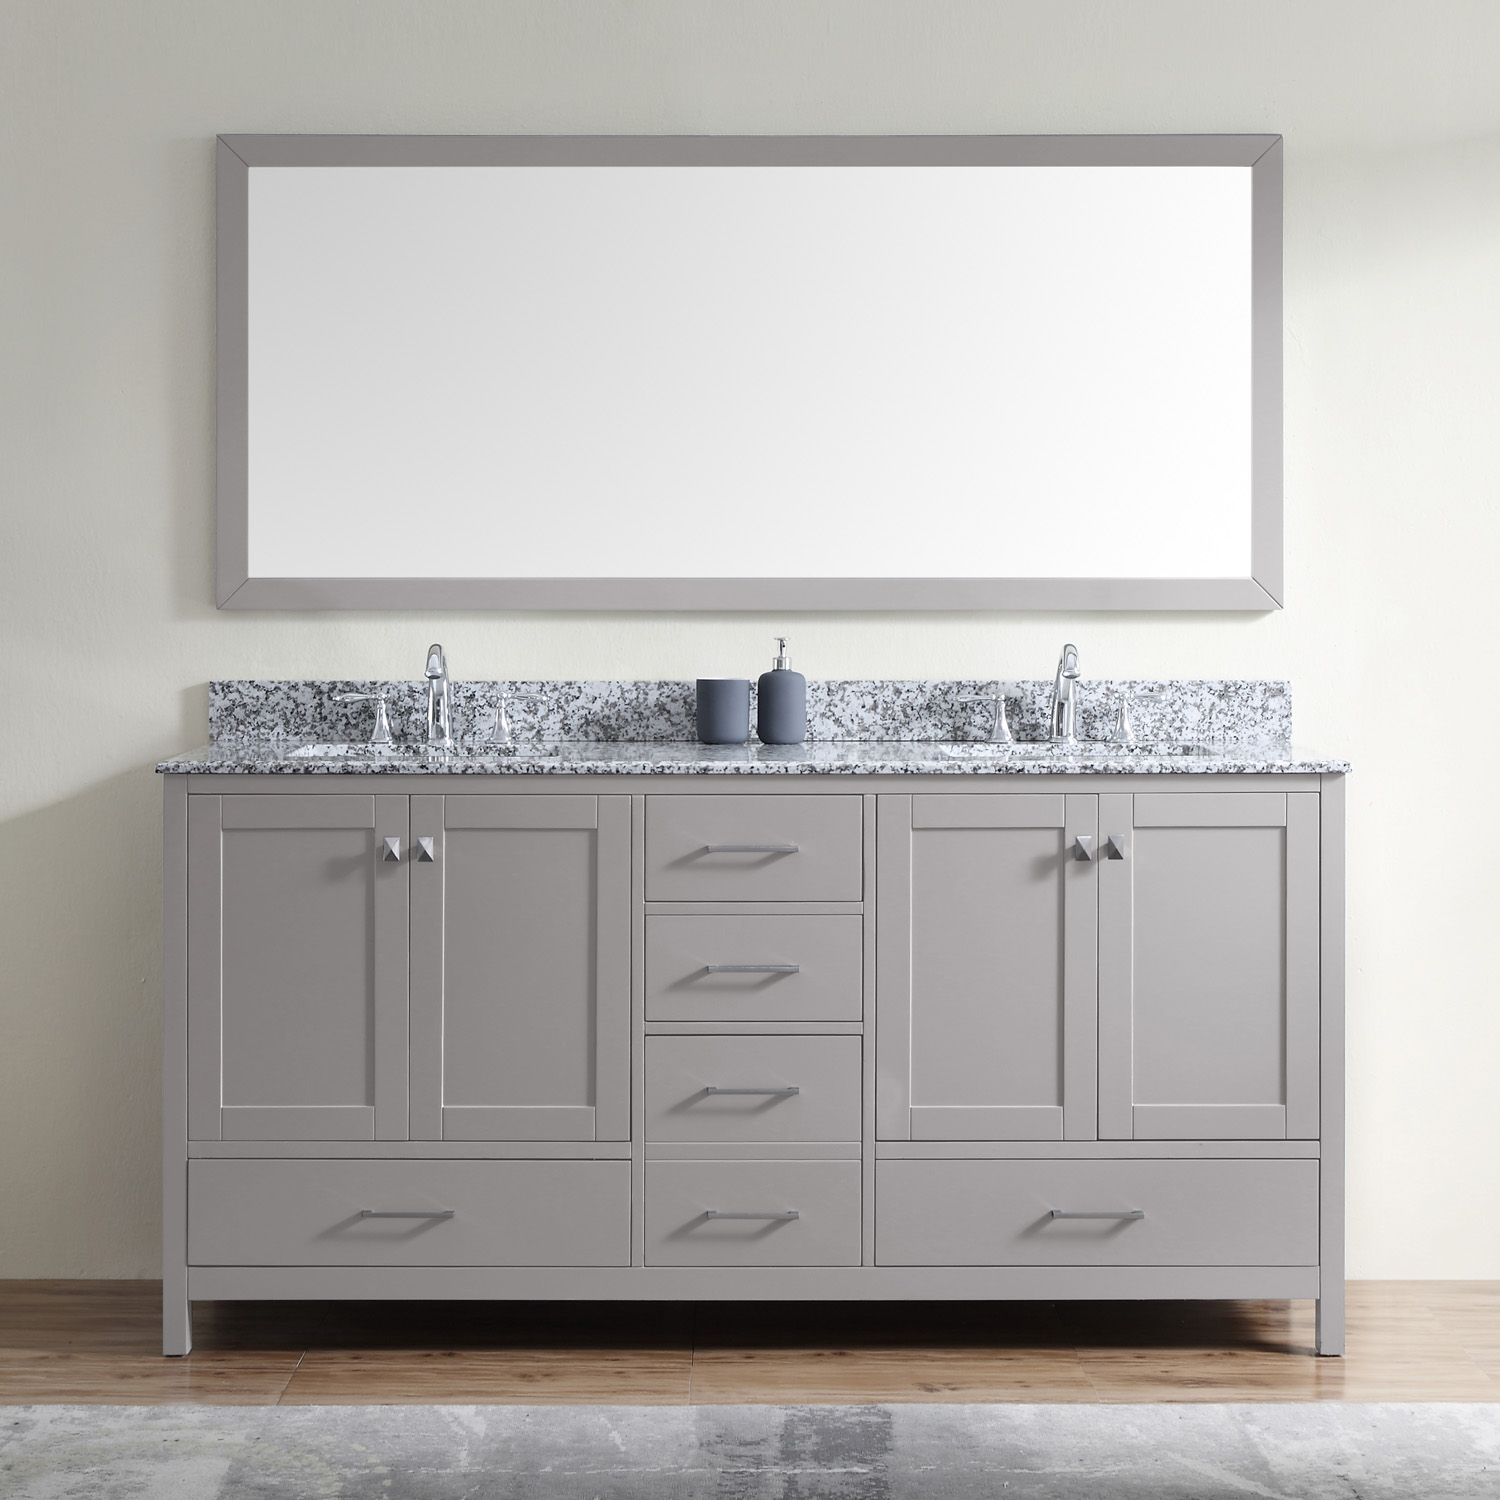 double hills mission vanity sink furniture dsc camden product